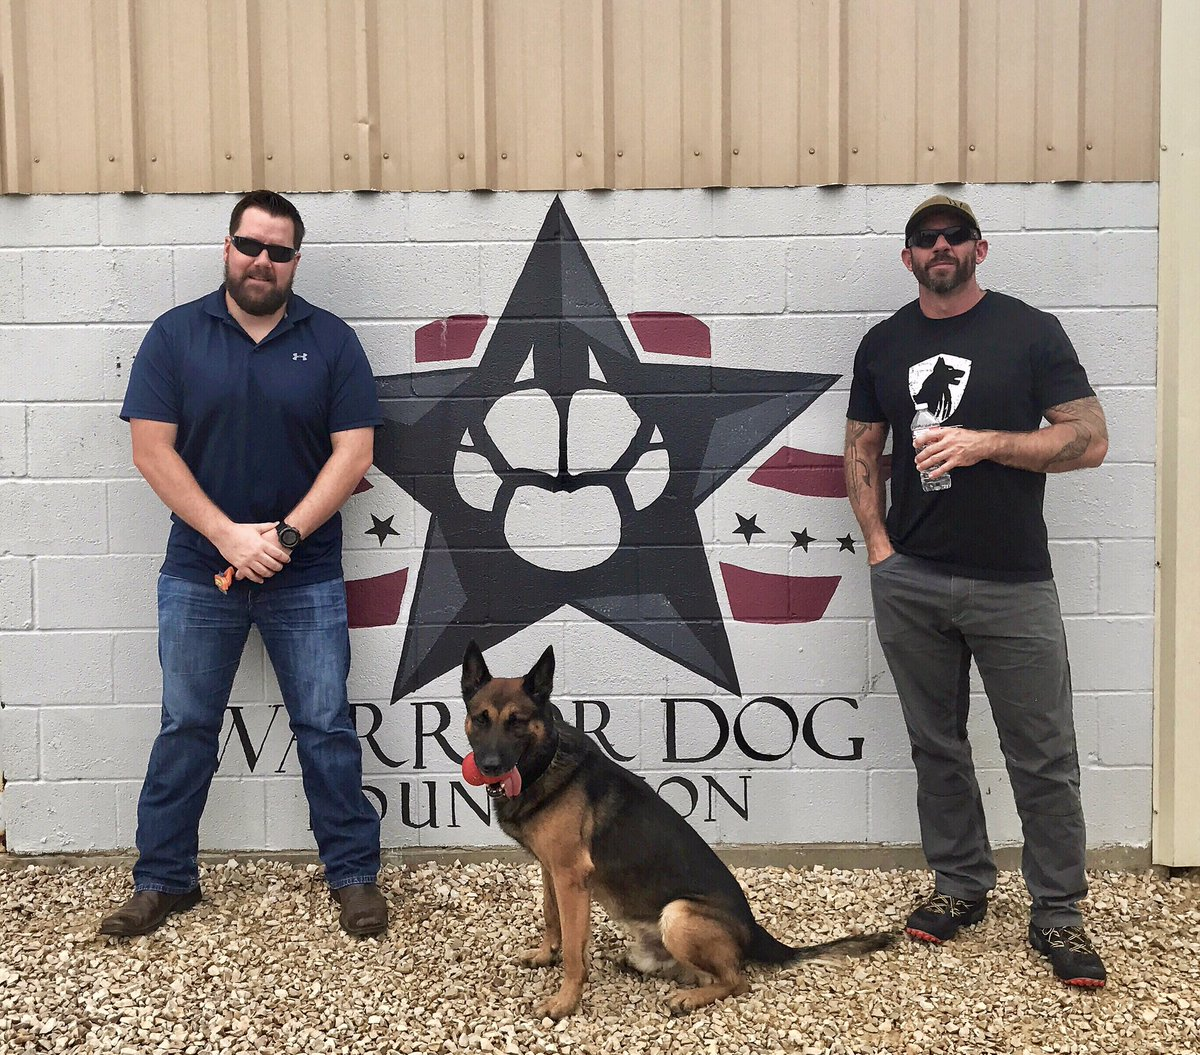 Fancy Mike Ritland On After Years Warriordog Mpc Has Officially Been Reunited Adopted By Hisformer Seal Mike Ritland On After Years Warrior Dog Foundation Twitter Wounded Warrior Dog Foundation bark post Warrior Dog Foundation